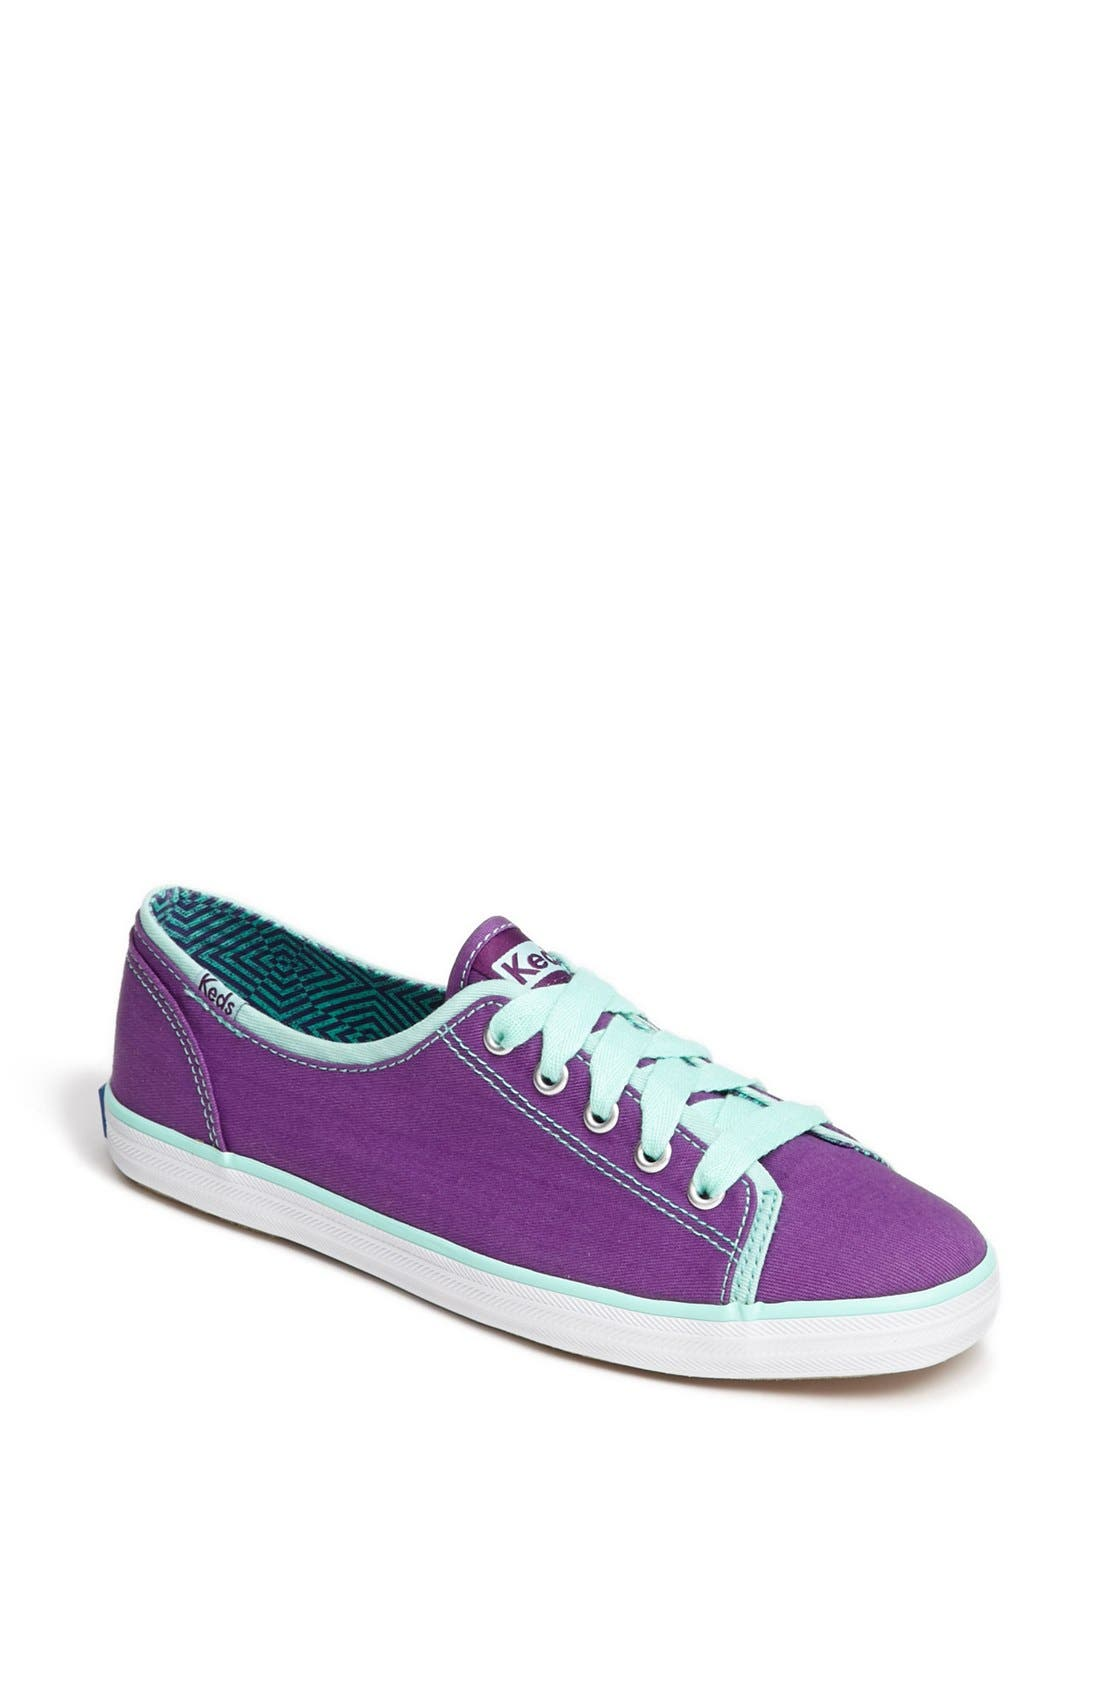 Alternate Image 1 Selected - Keds® 'Rally' Sneaker (Women)